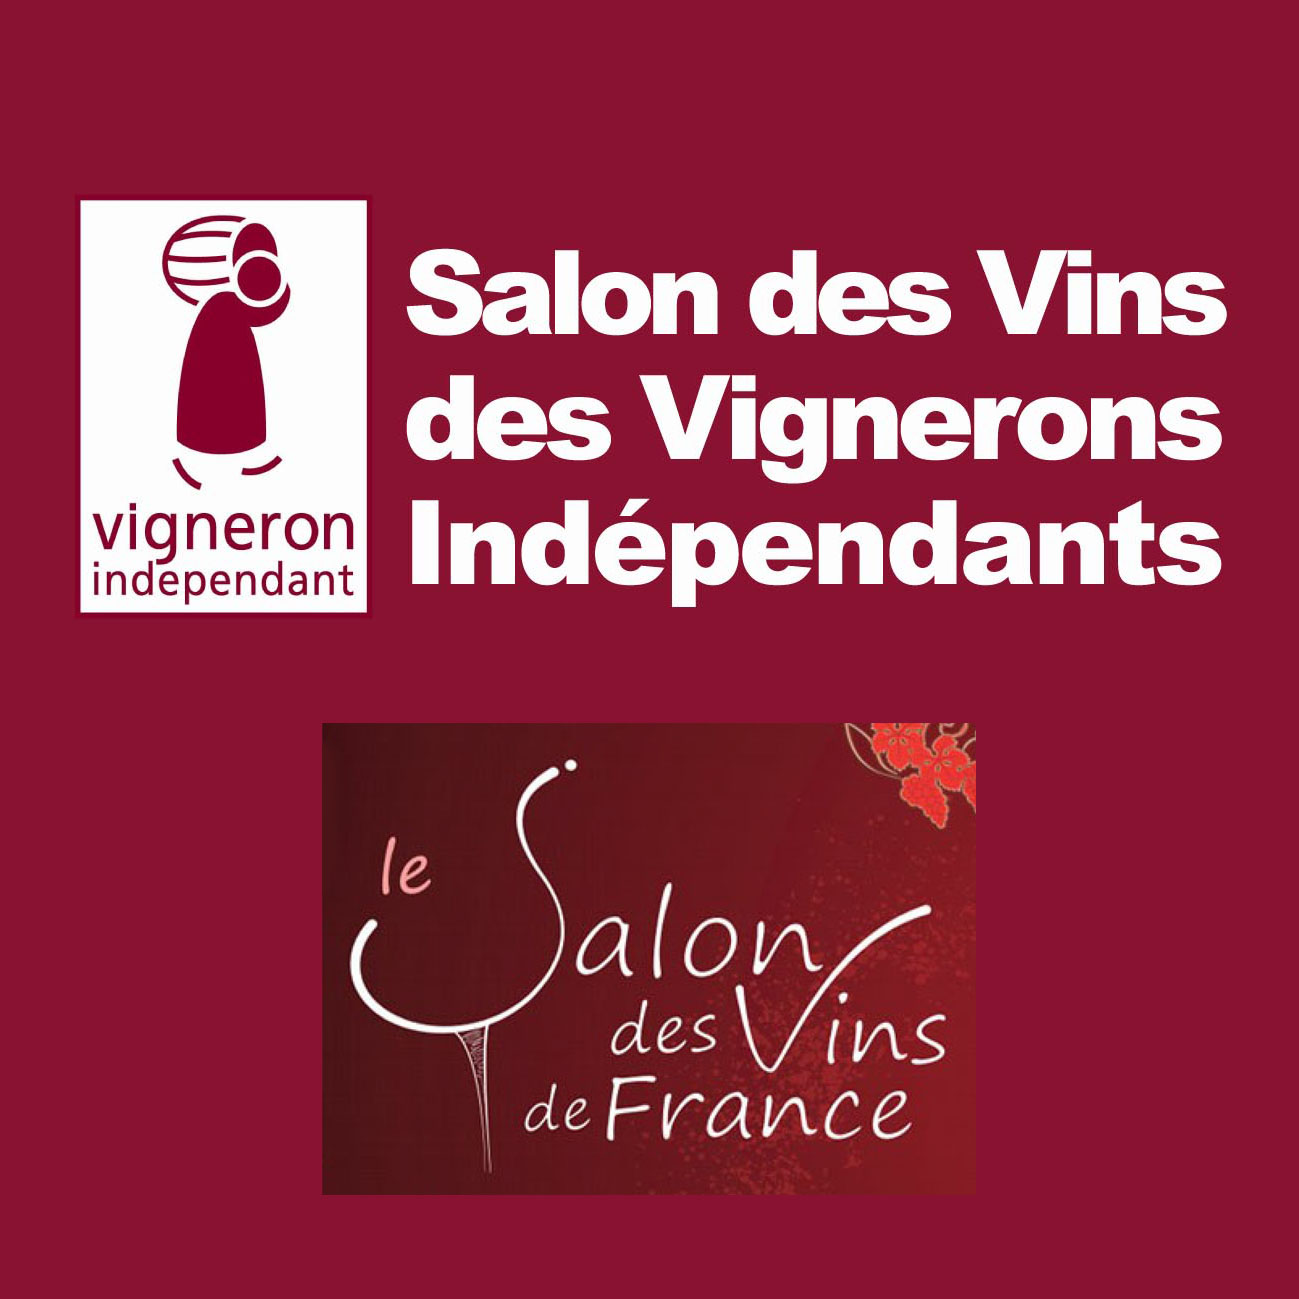 Salon des vignerons ind pendants de lille domaine durieu for Salon des vins independants